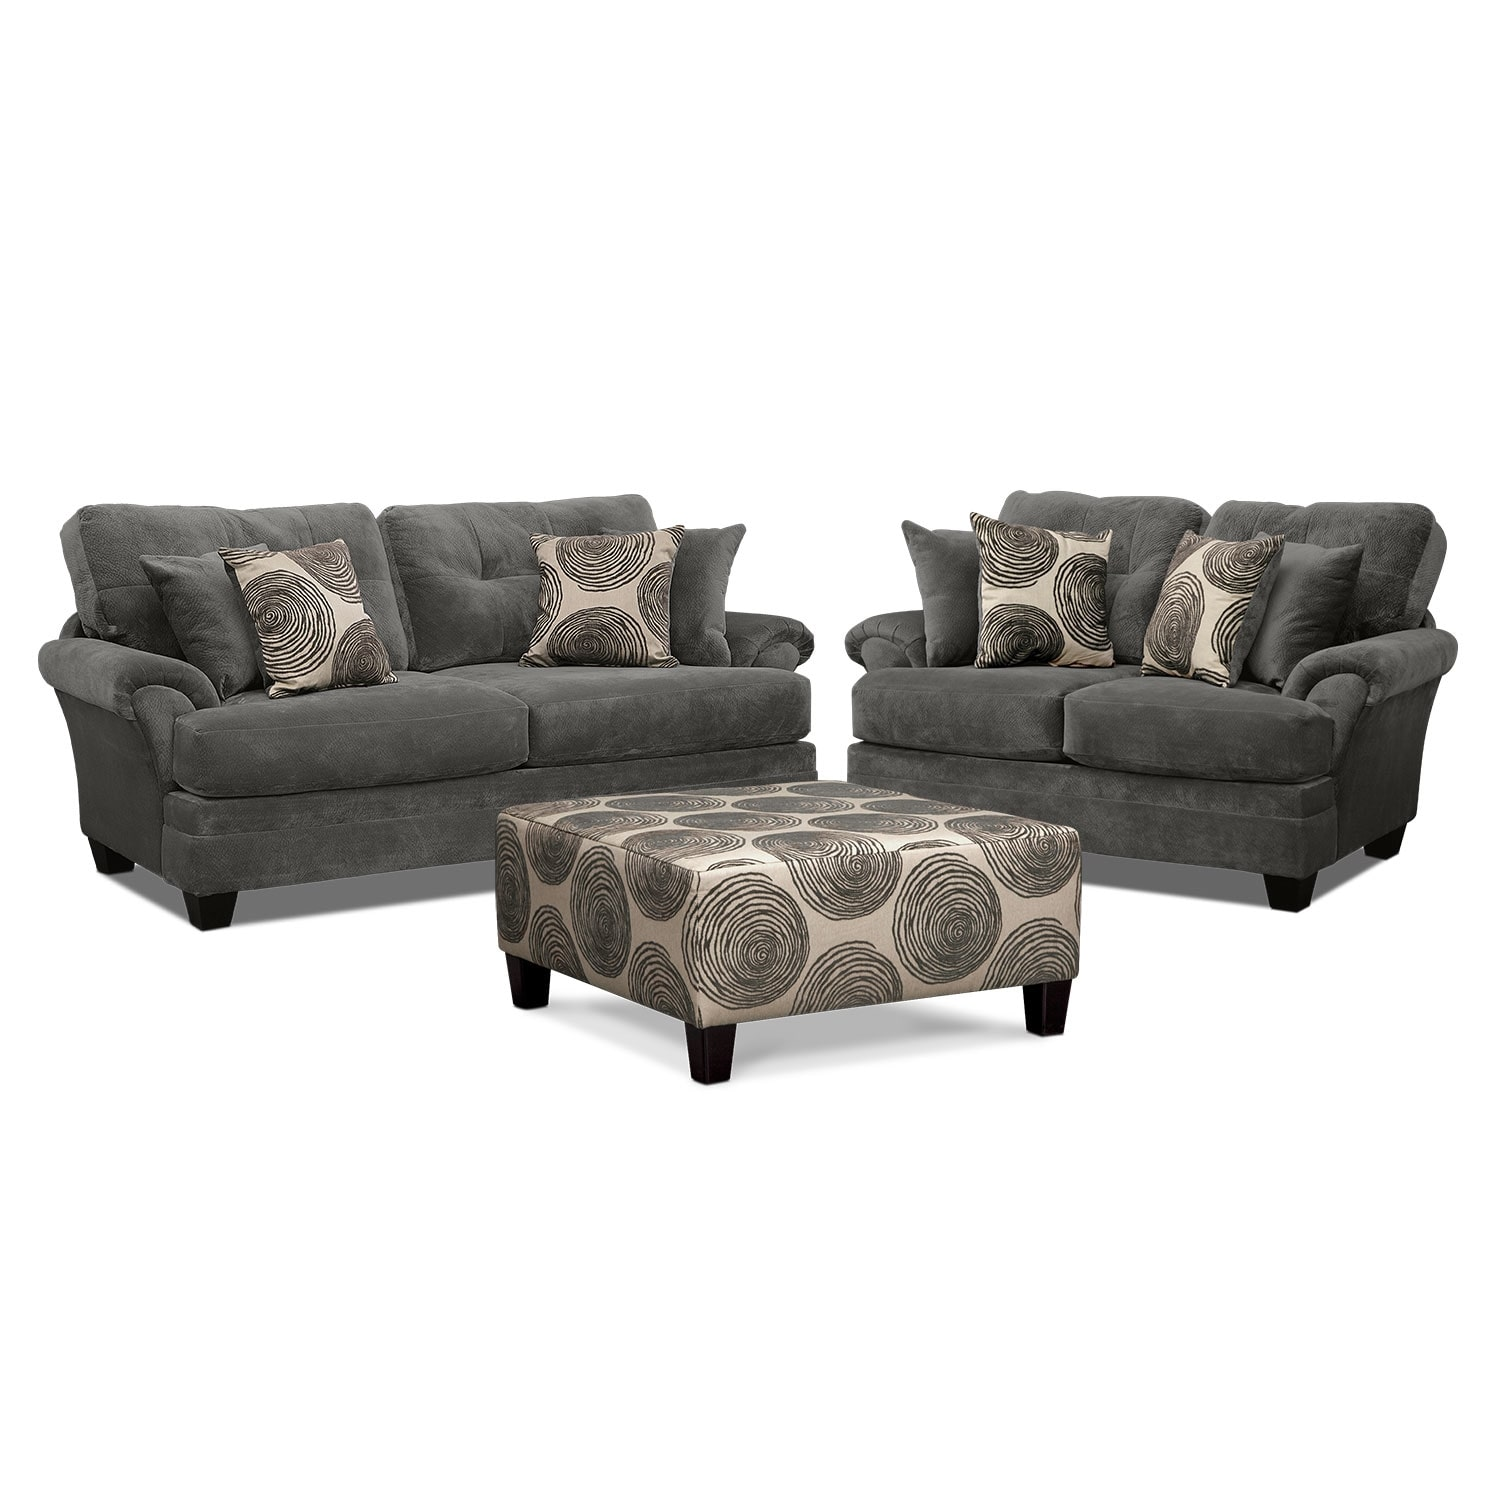 Living Room Furniture - Cordelle Sofa, Loveseat and Cocktail Ottoman Set - Gray